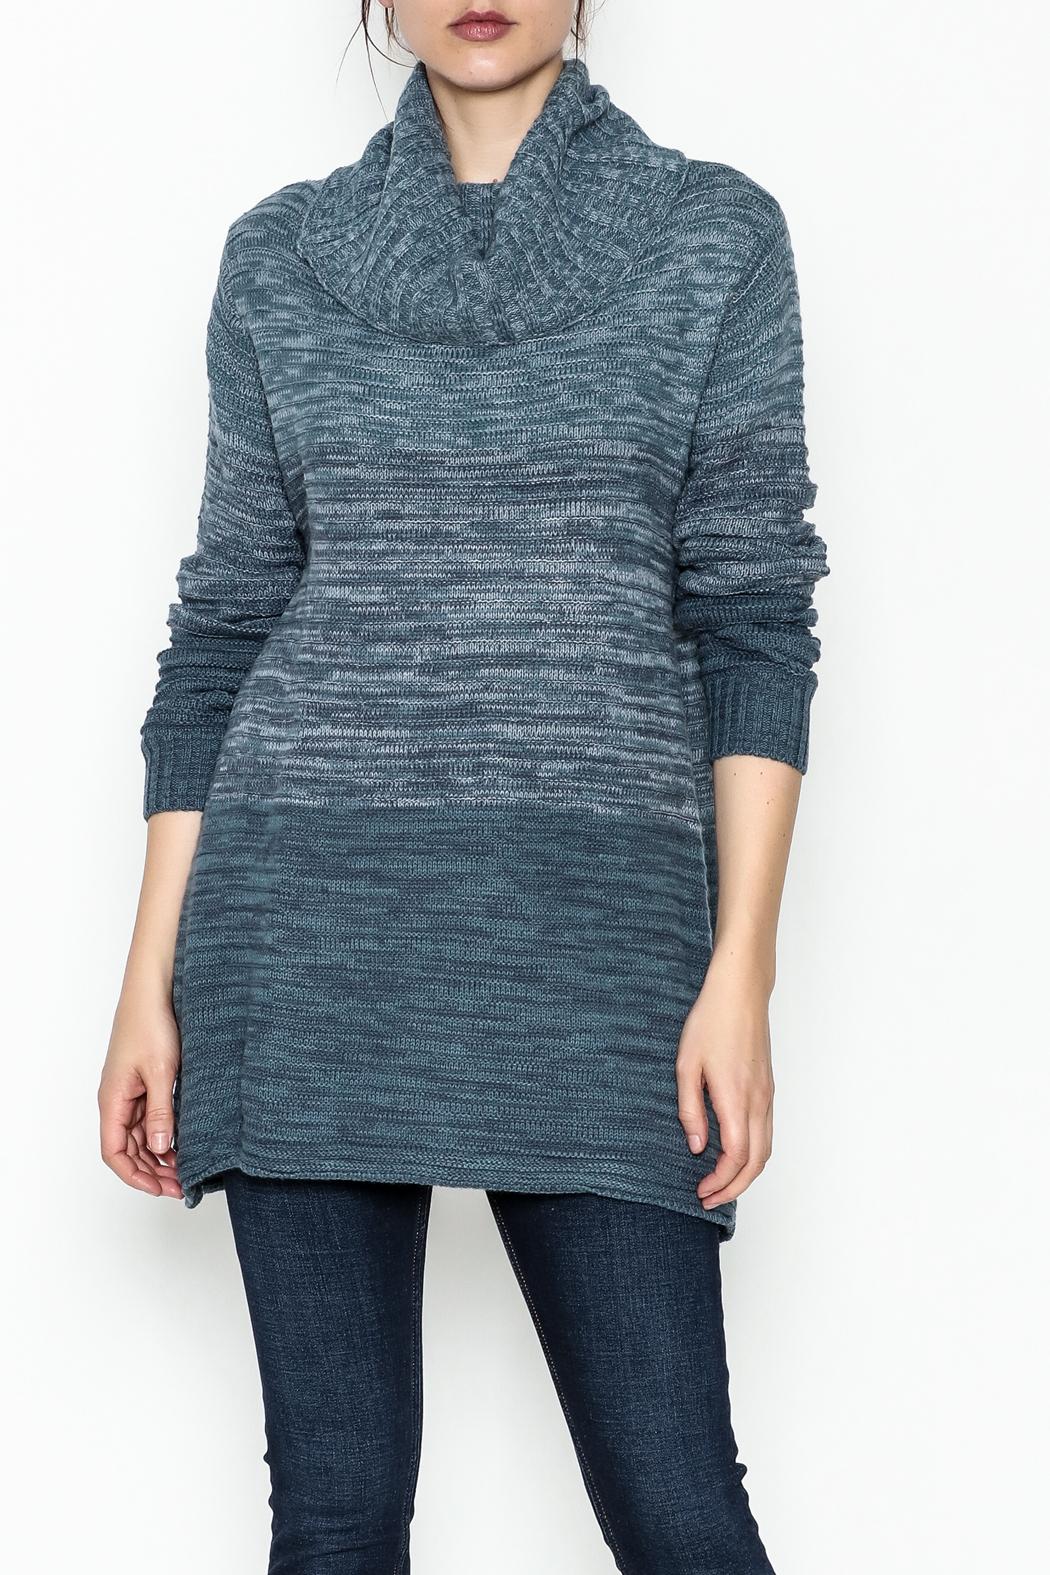 Keren Hart Variegated Cowl Neck Sweater - Main Image